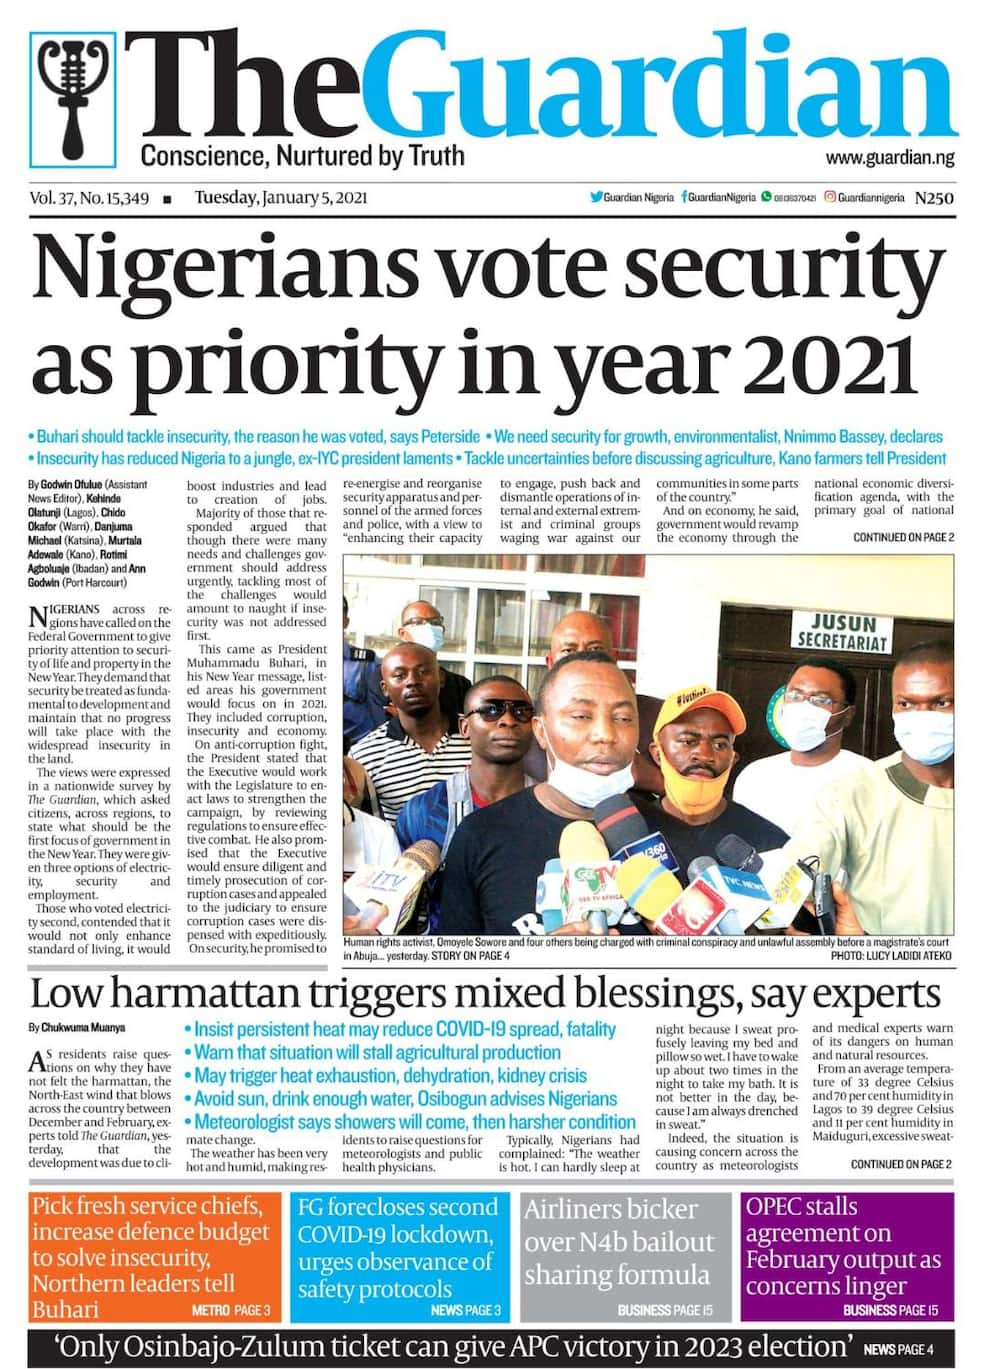 Newspaper reviews: FG accuses Amnesty, ICC, of fuelling insecurity in Nigeria